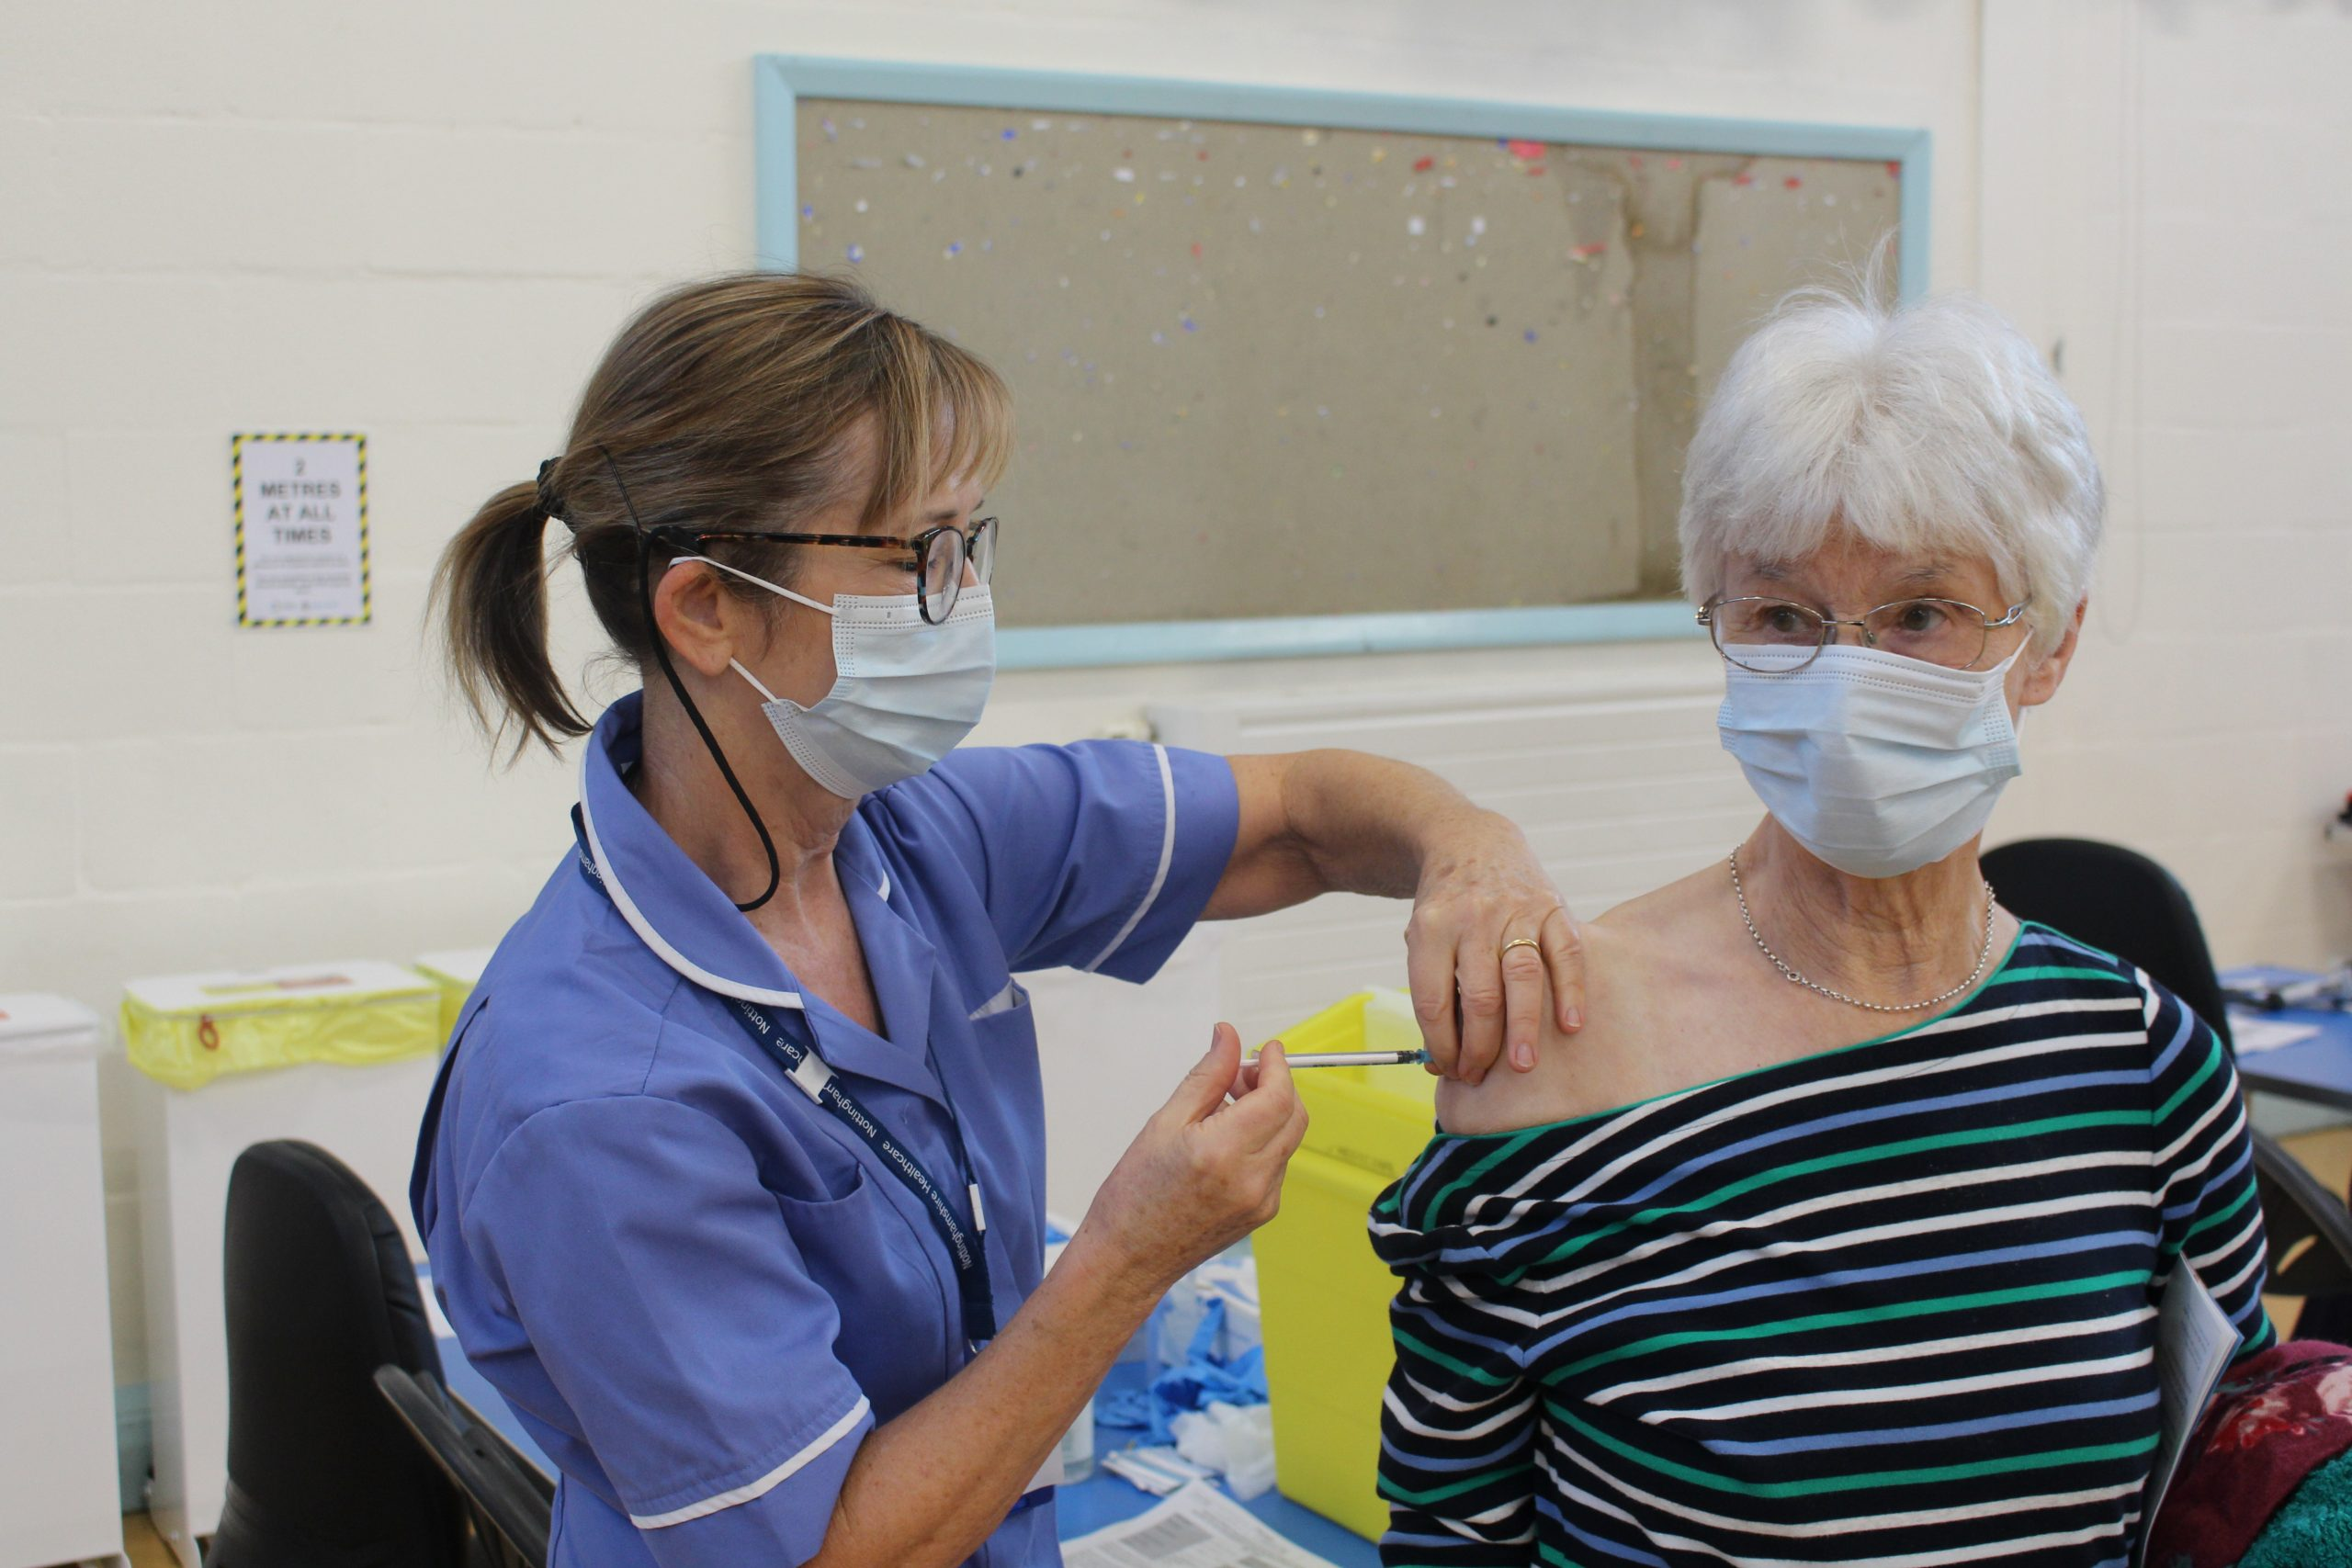 West Bridgford resident Wendy Wain was among the first to receive the jab from nurse Jacqui Cooper scaled